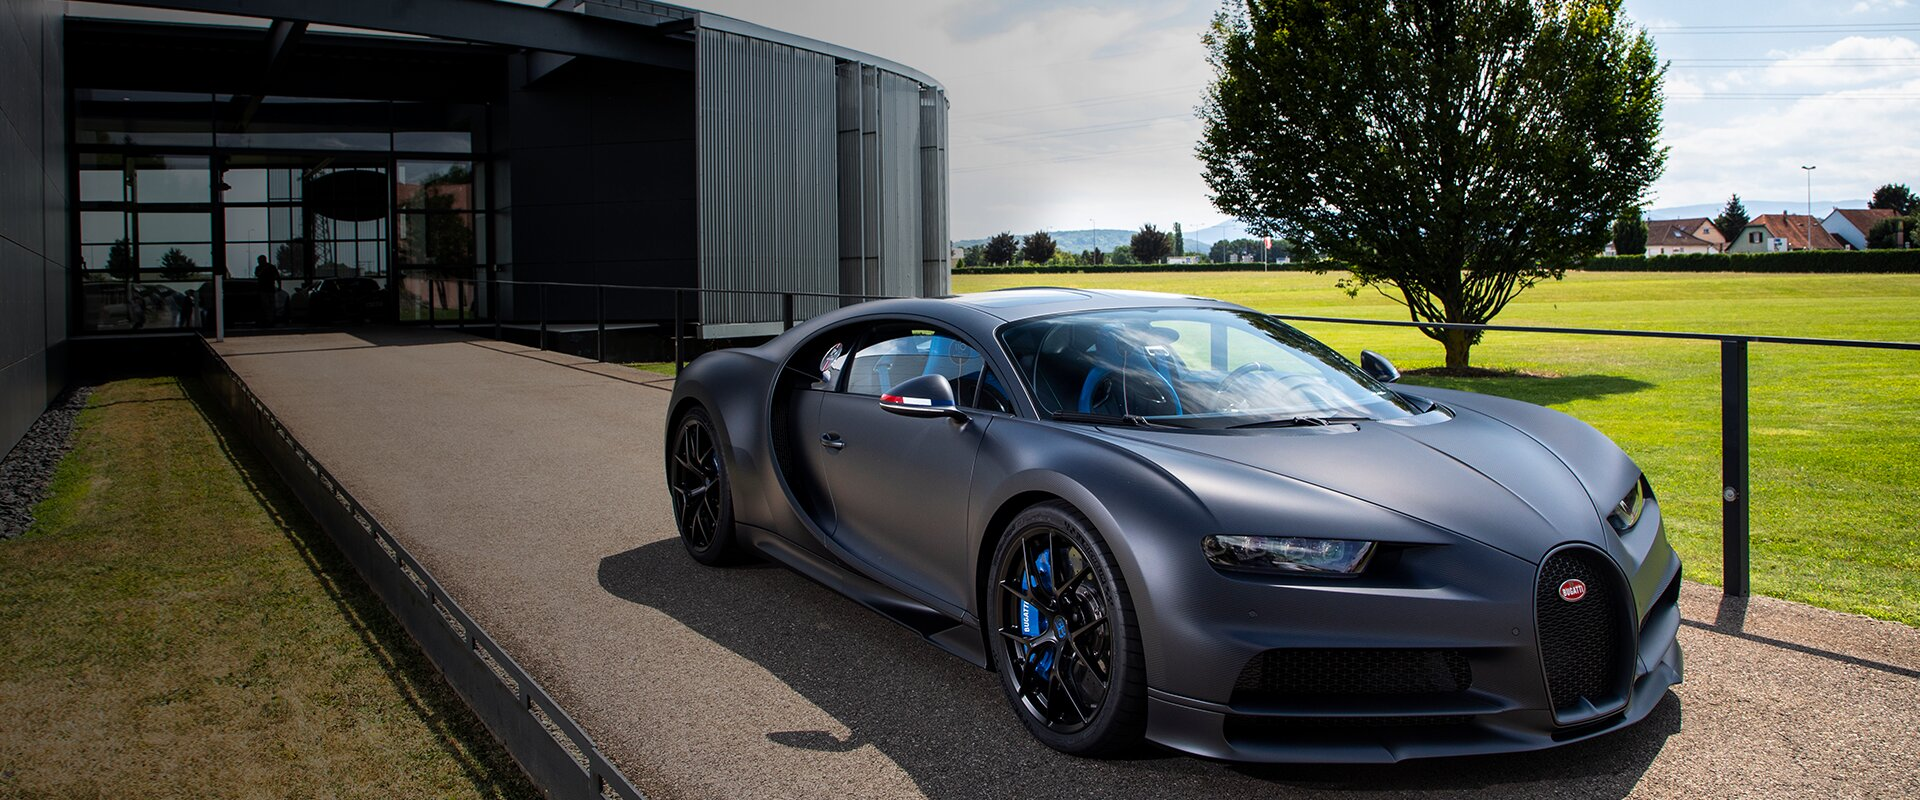 200th Chiron car manufactured